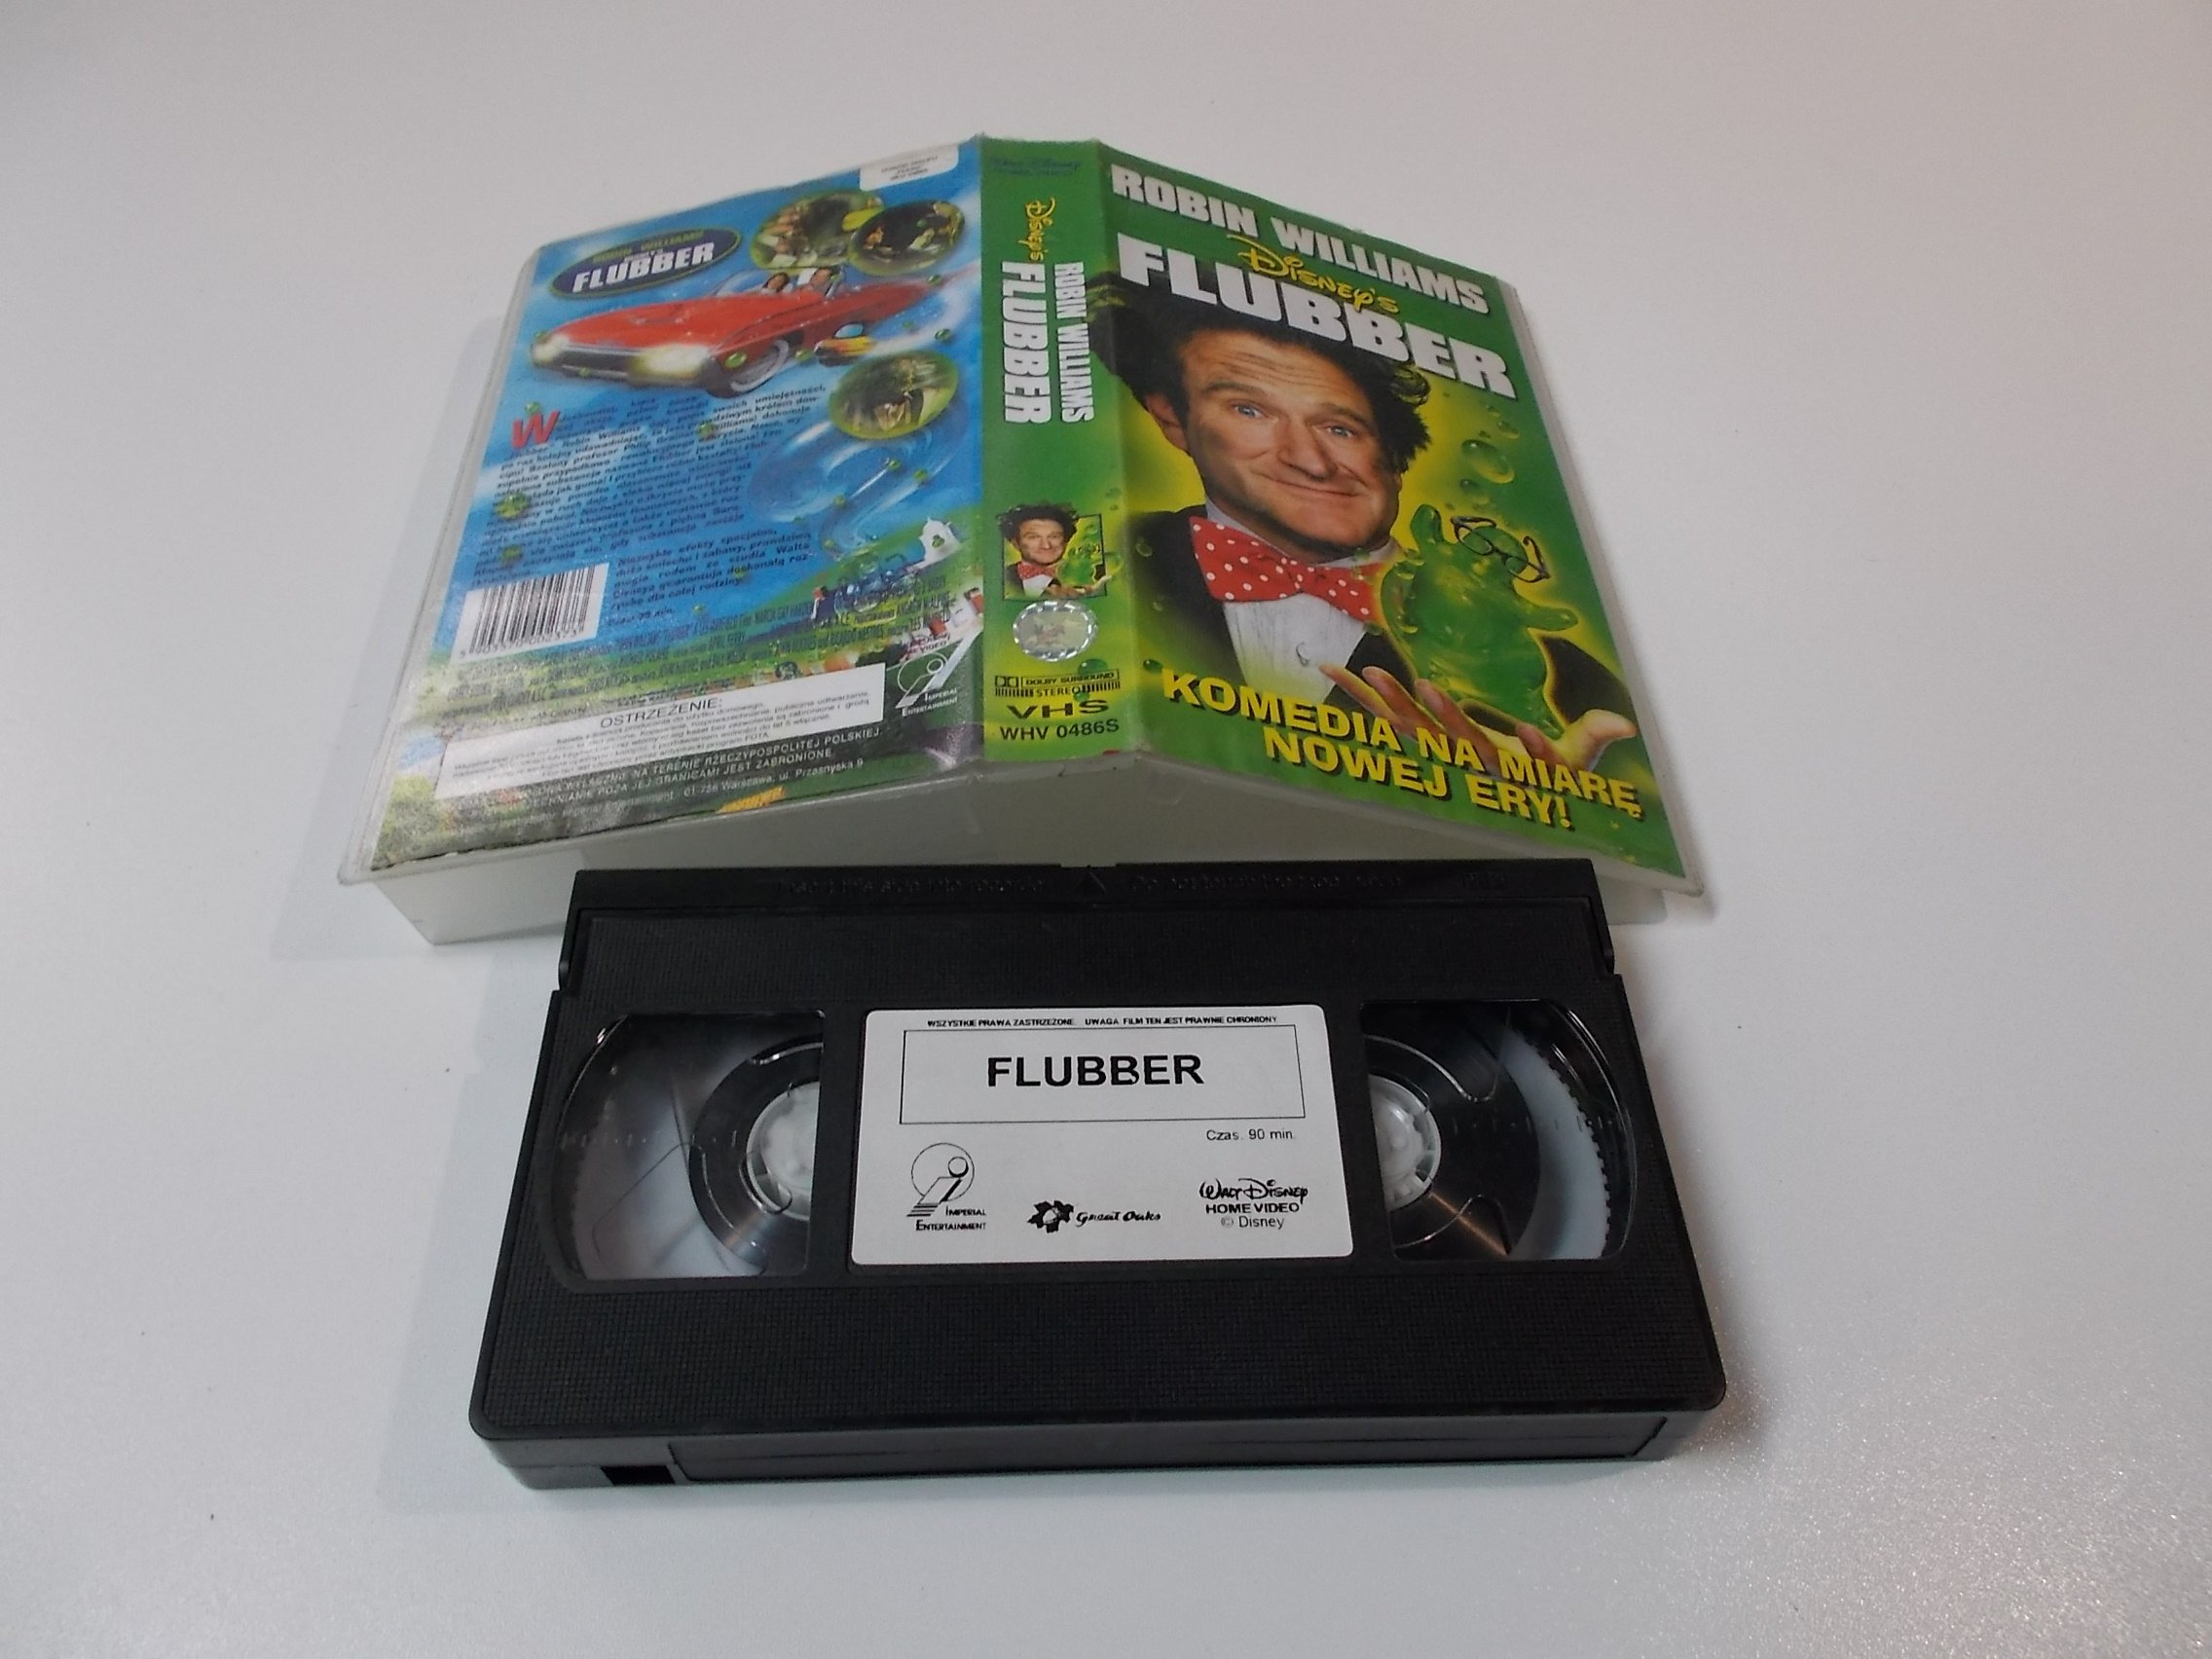 FLUBBER - ROBIN WILLIAMS - VHS Kaseta Video - Opole 1616